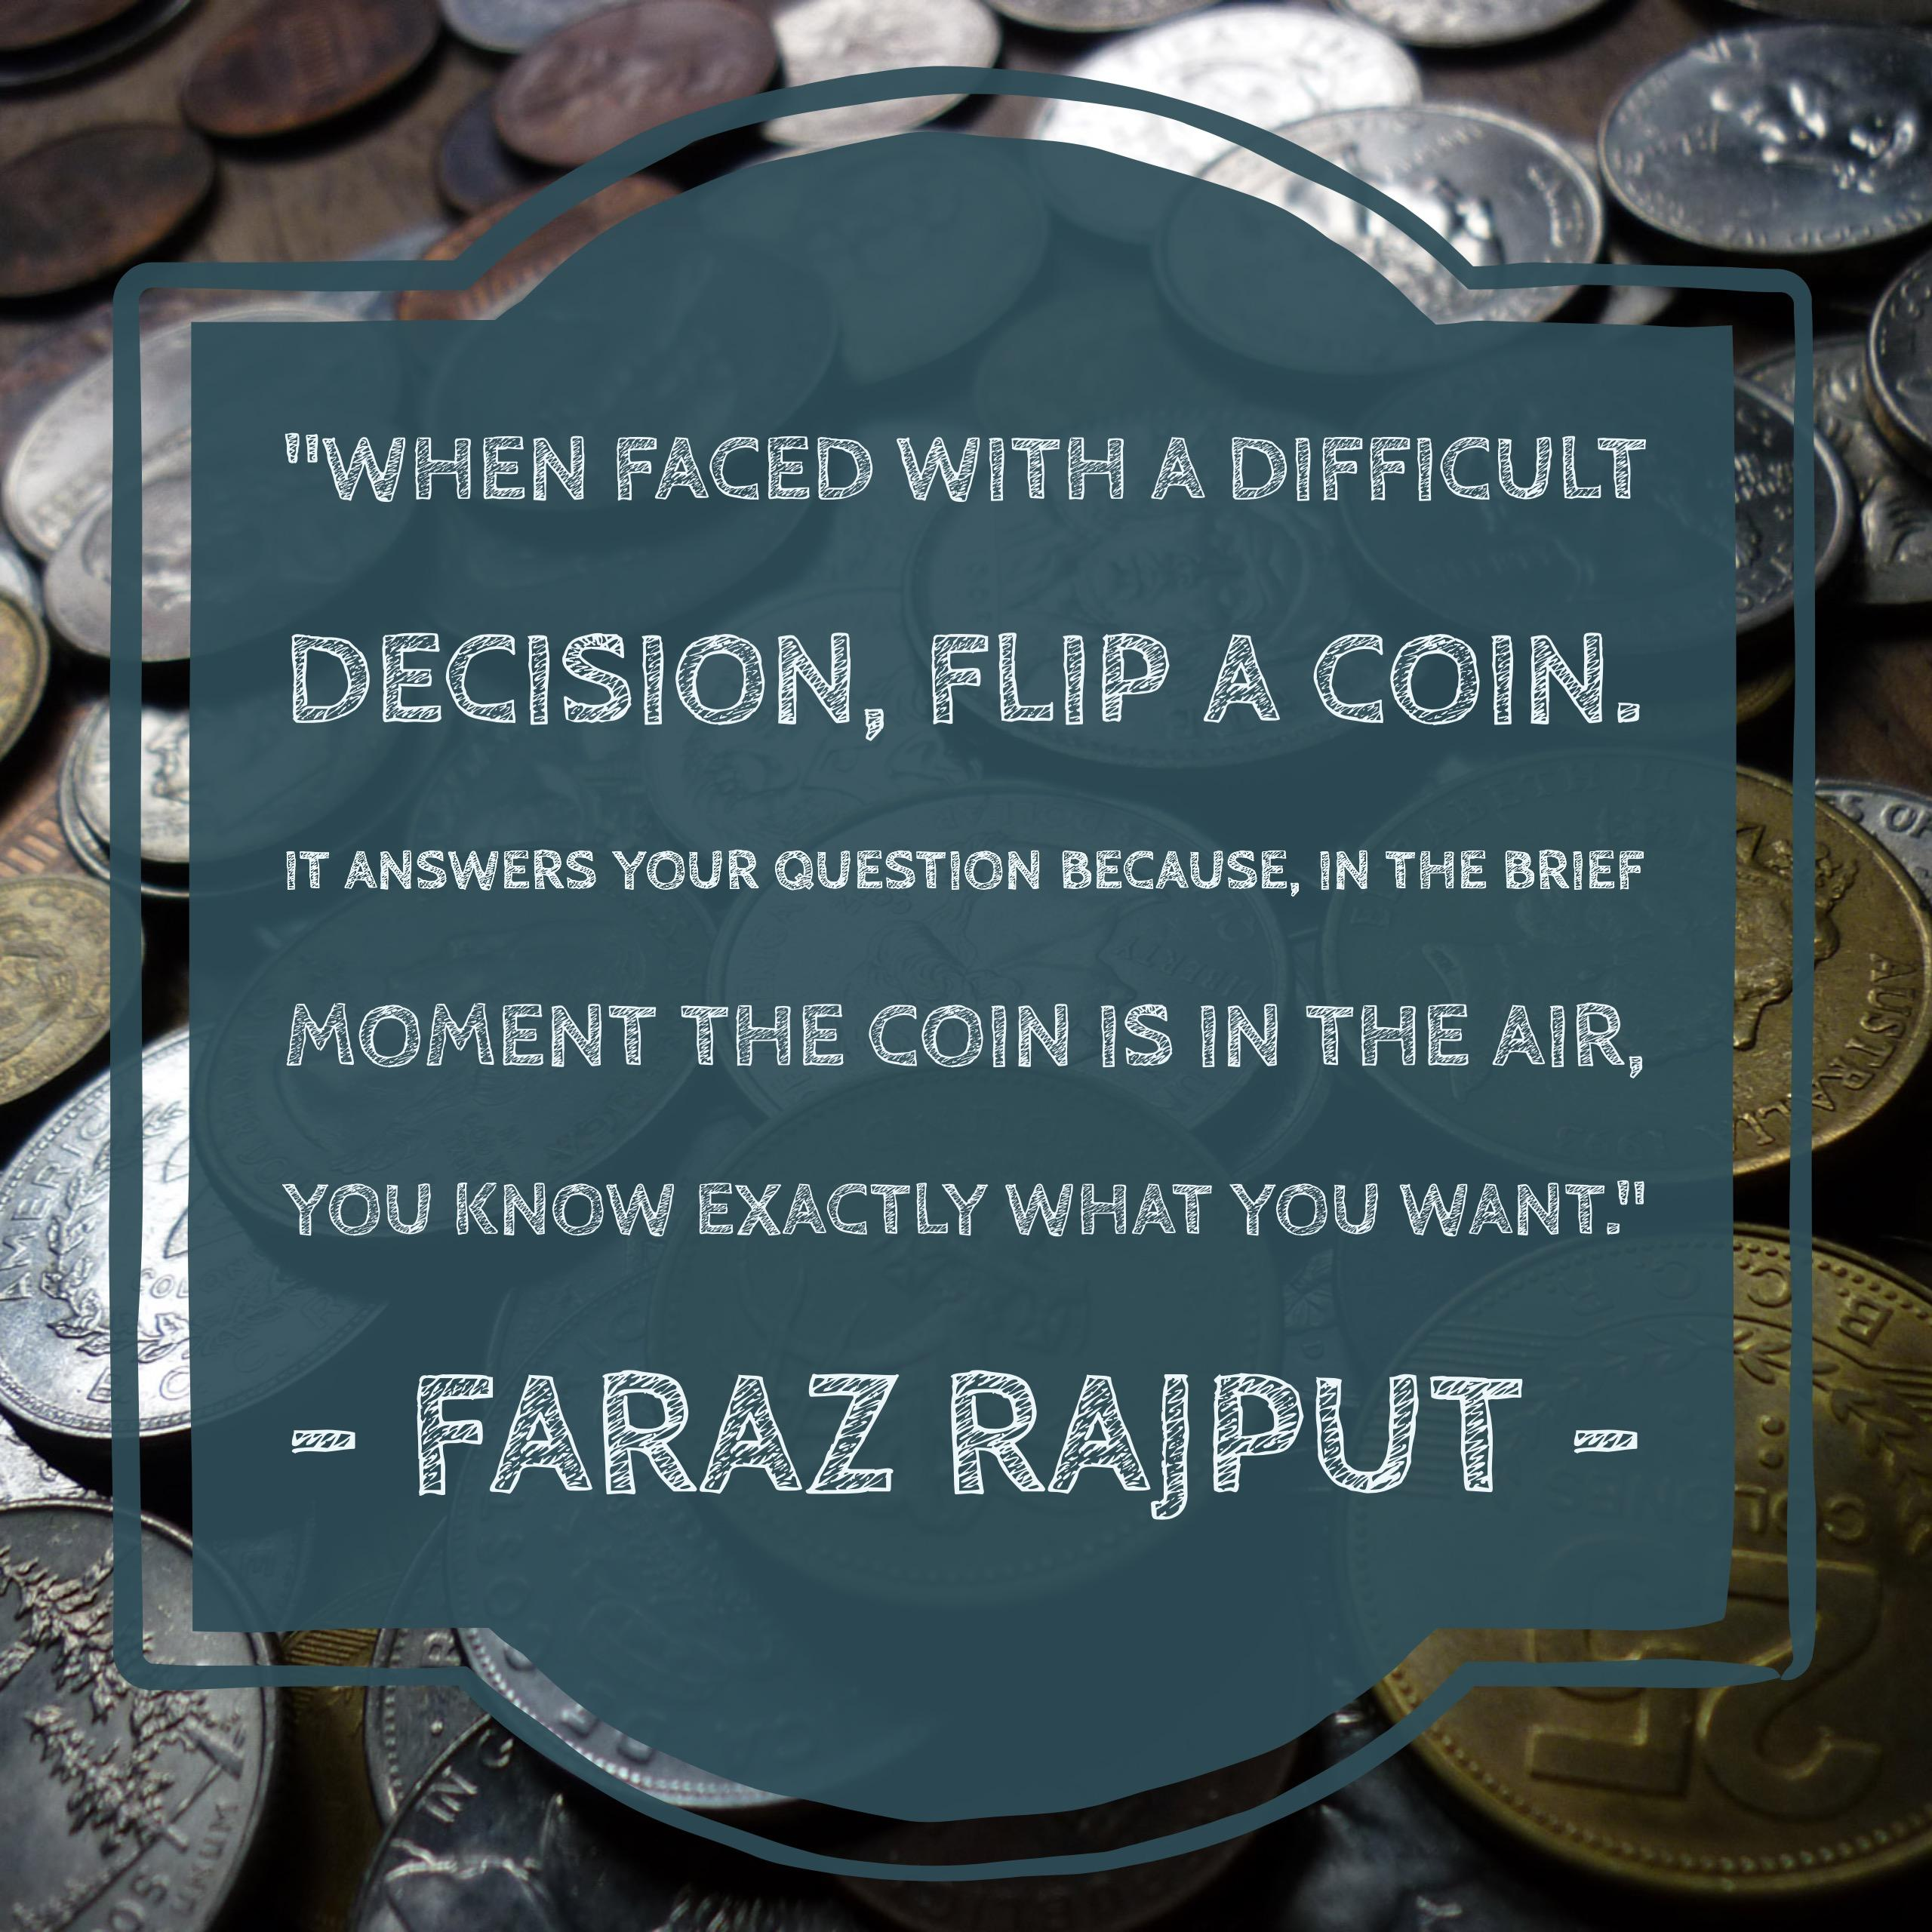 When faced with a difficult decision, flip a coin.  It answers your question because in the brief moment the coin is 9n the air you know exactly what you want.